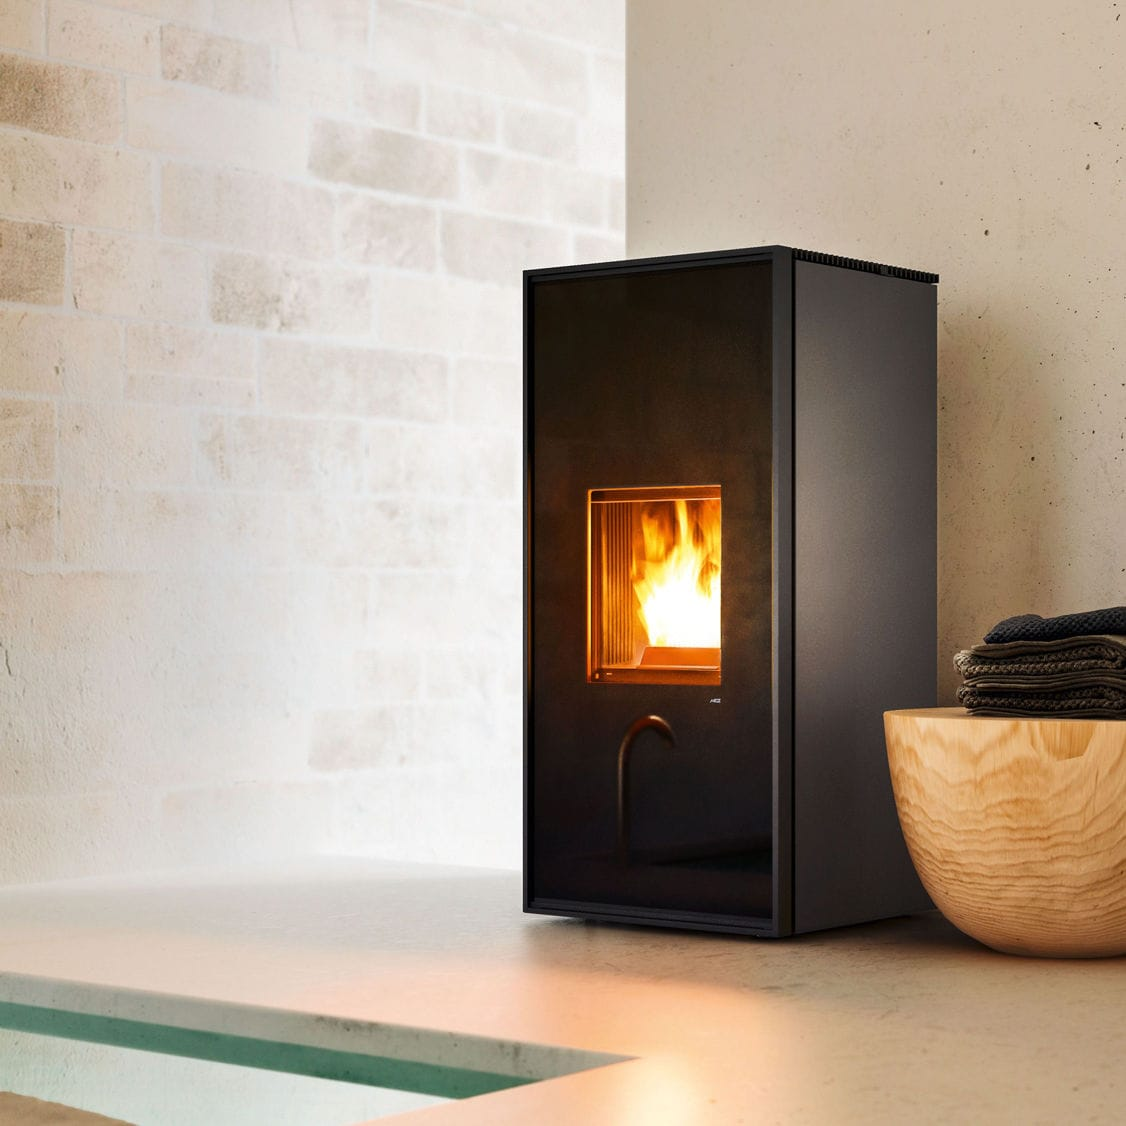 Mcz Cute Pellet Heating Stove Contemporary Steel Cast Iron Tilda Mcz